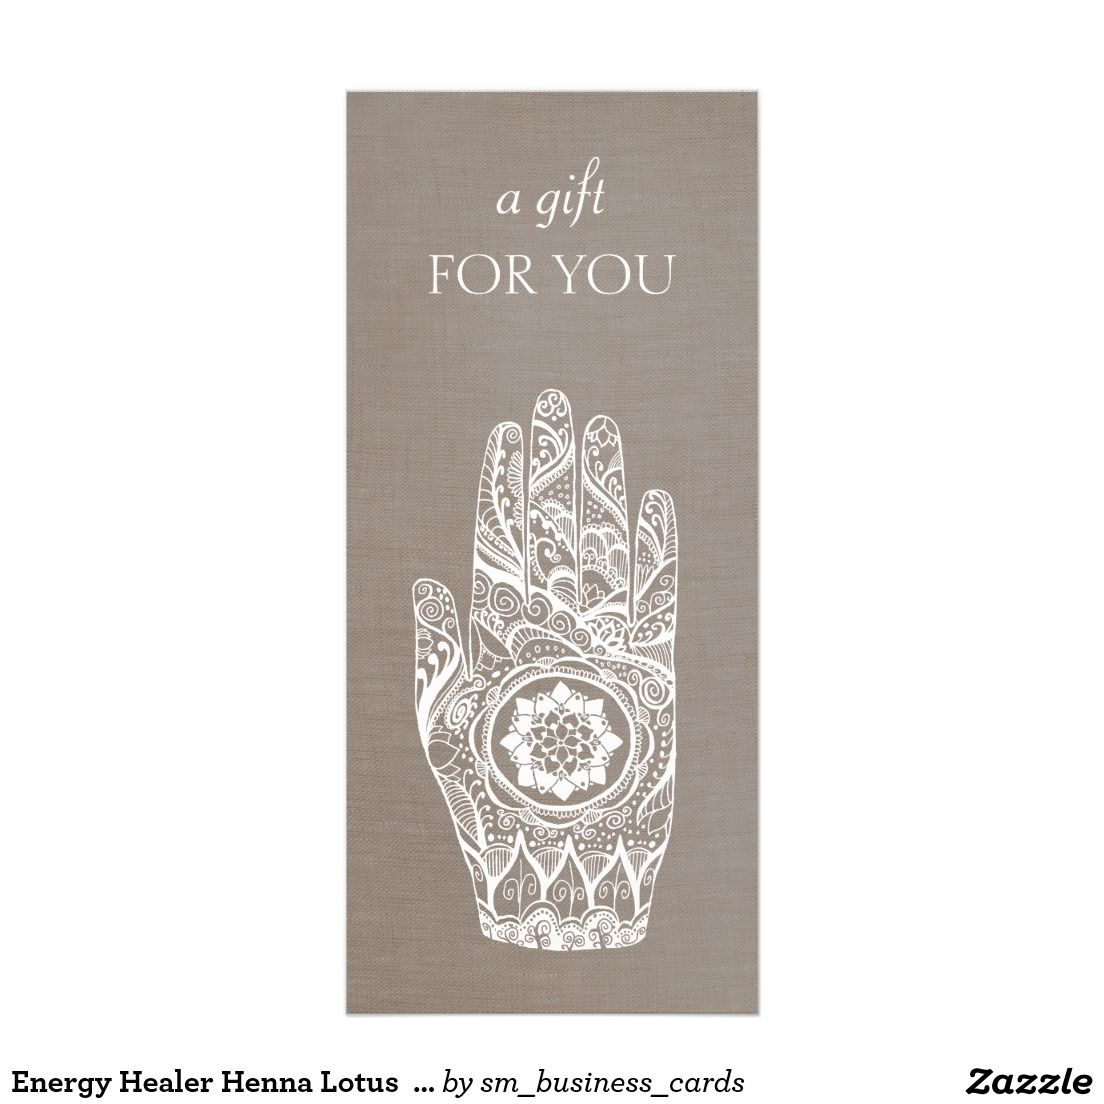 Energy healer henna lotus gift certificate healer reiki symbols energy healer henna lotus gift certificate rack card template great for massage therapists reiki masters spiritual healers and more yelopaper Image collections